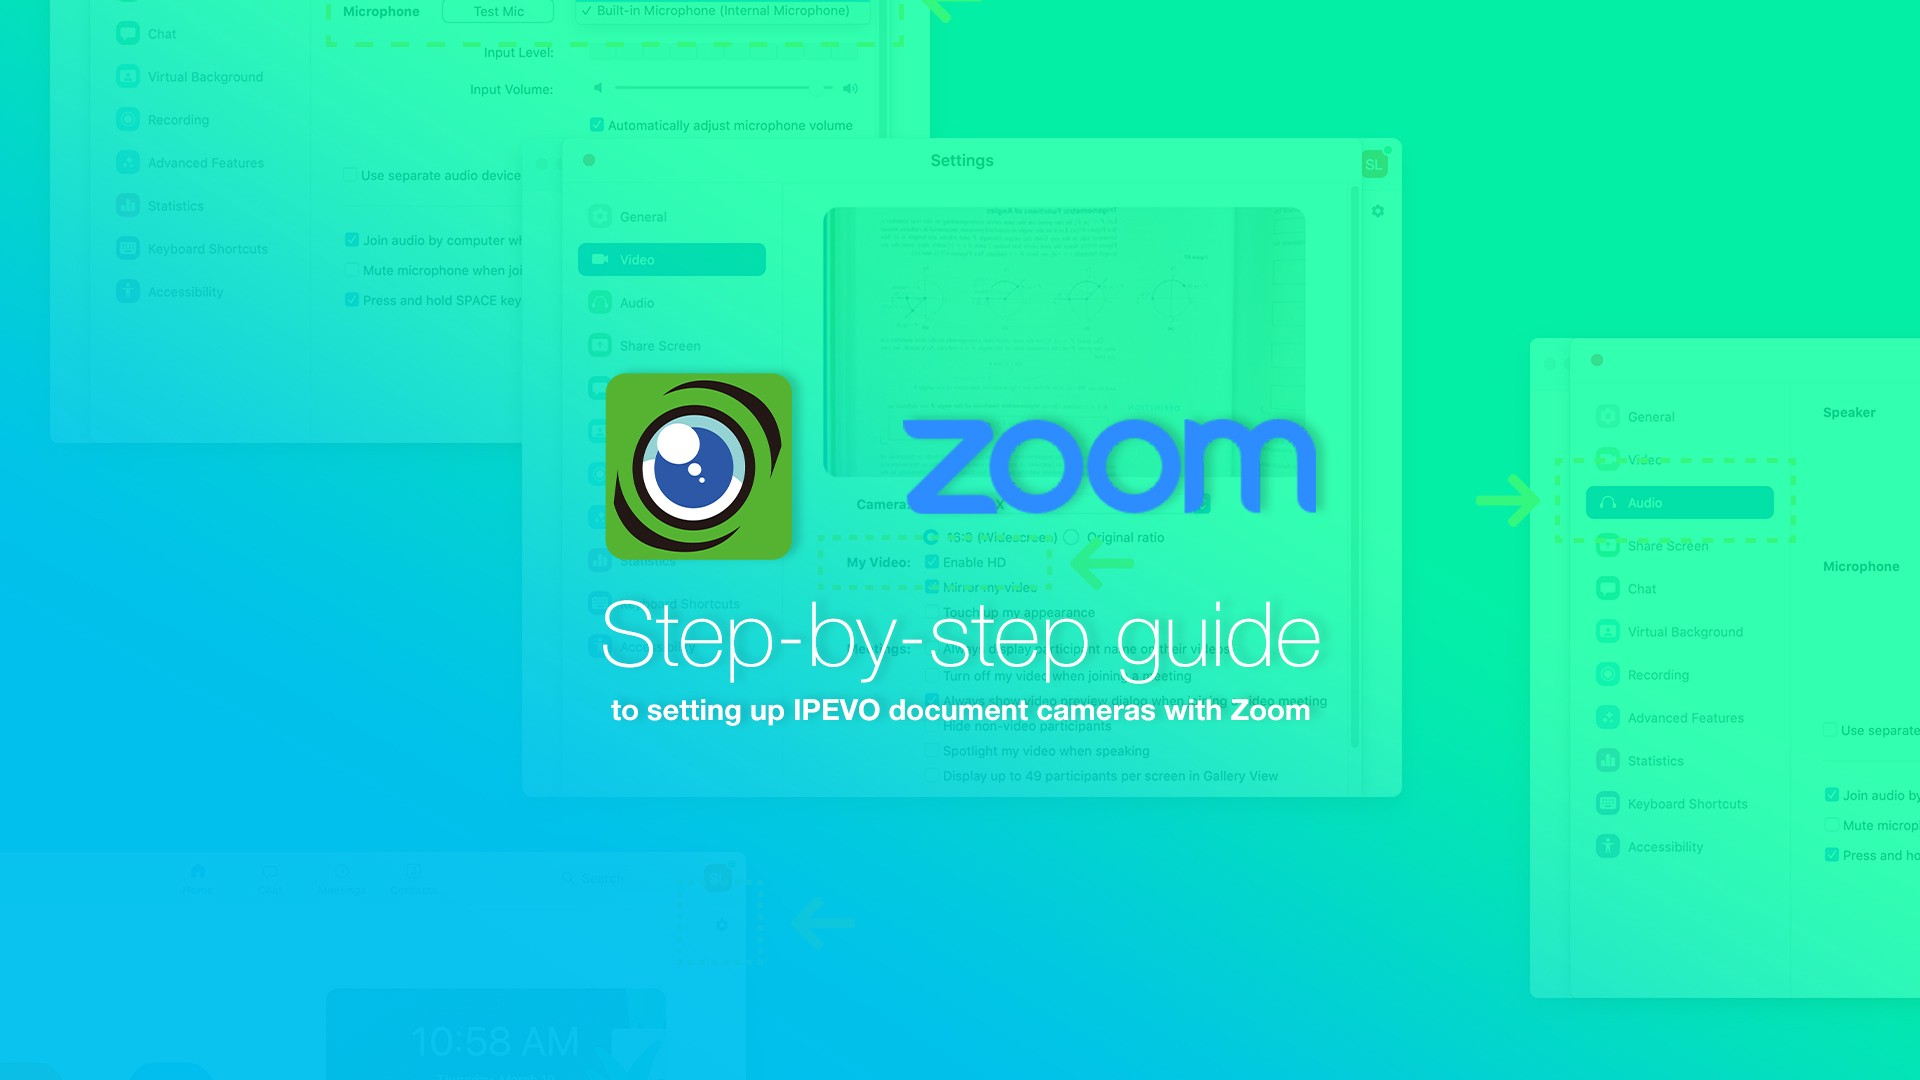 Step-by-step guide to setting up IPEVO document cameras with Zoom